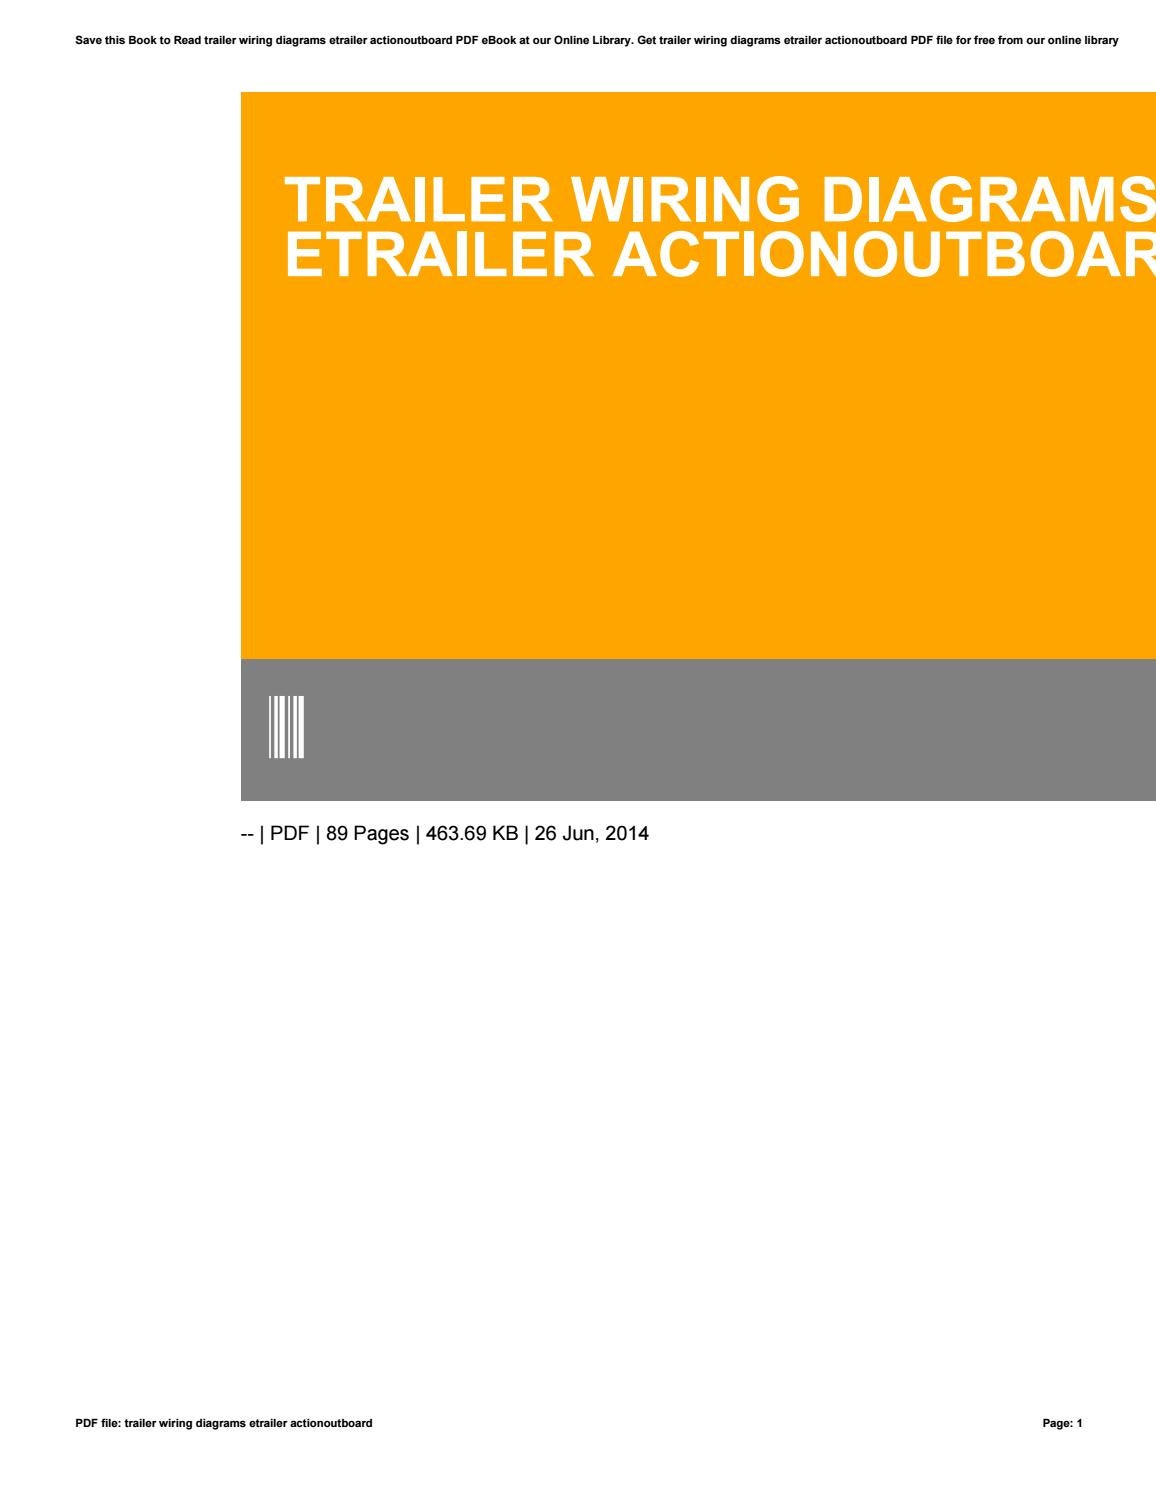 Trailer Wiring Diagrams Etrailer Actionoutboard By Laoho66